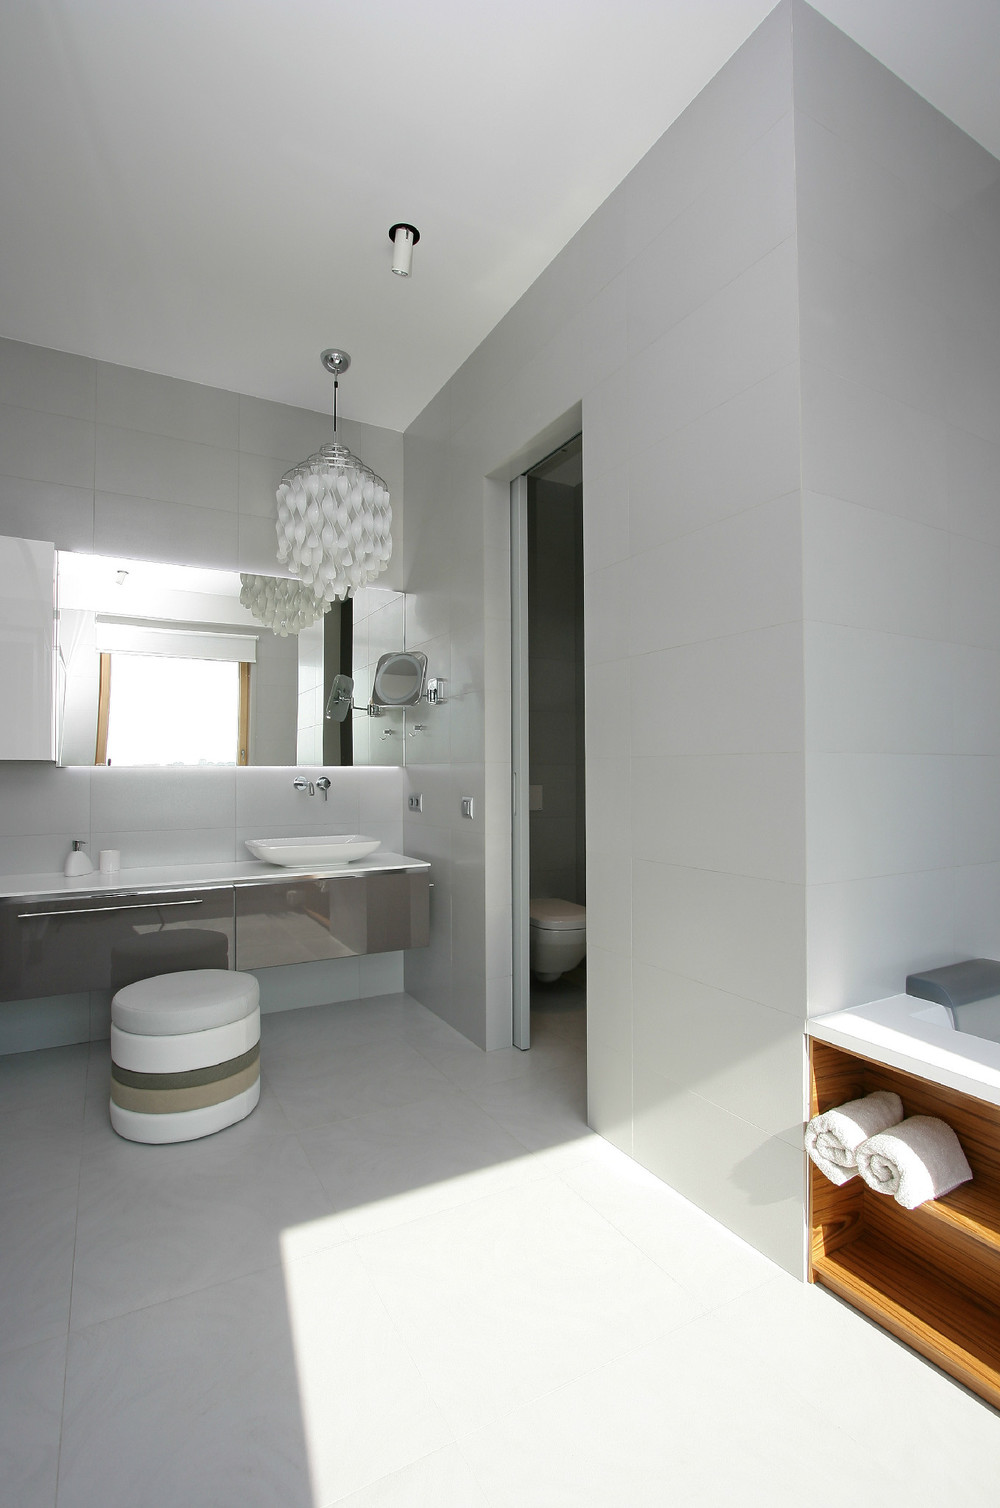 White Bathroom - Glowing interior designs